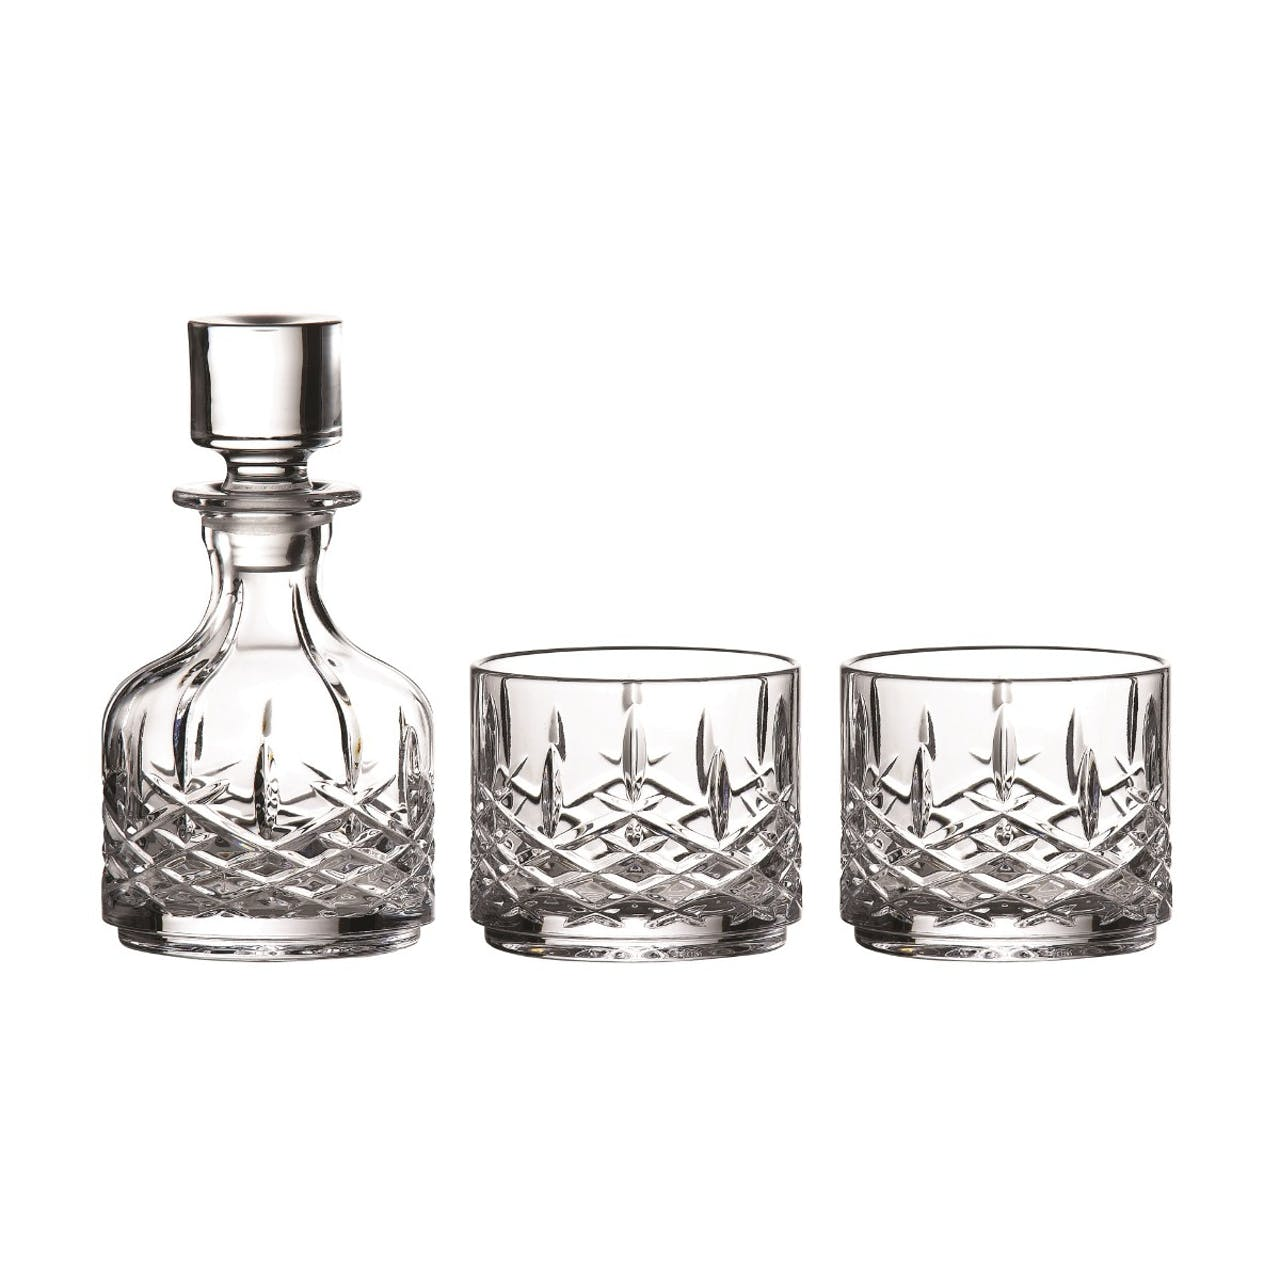 Marquis by Waterford  Markham Decanter Set